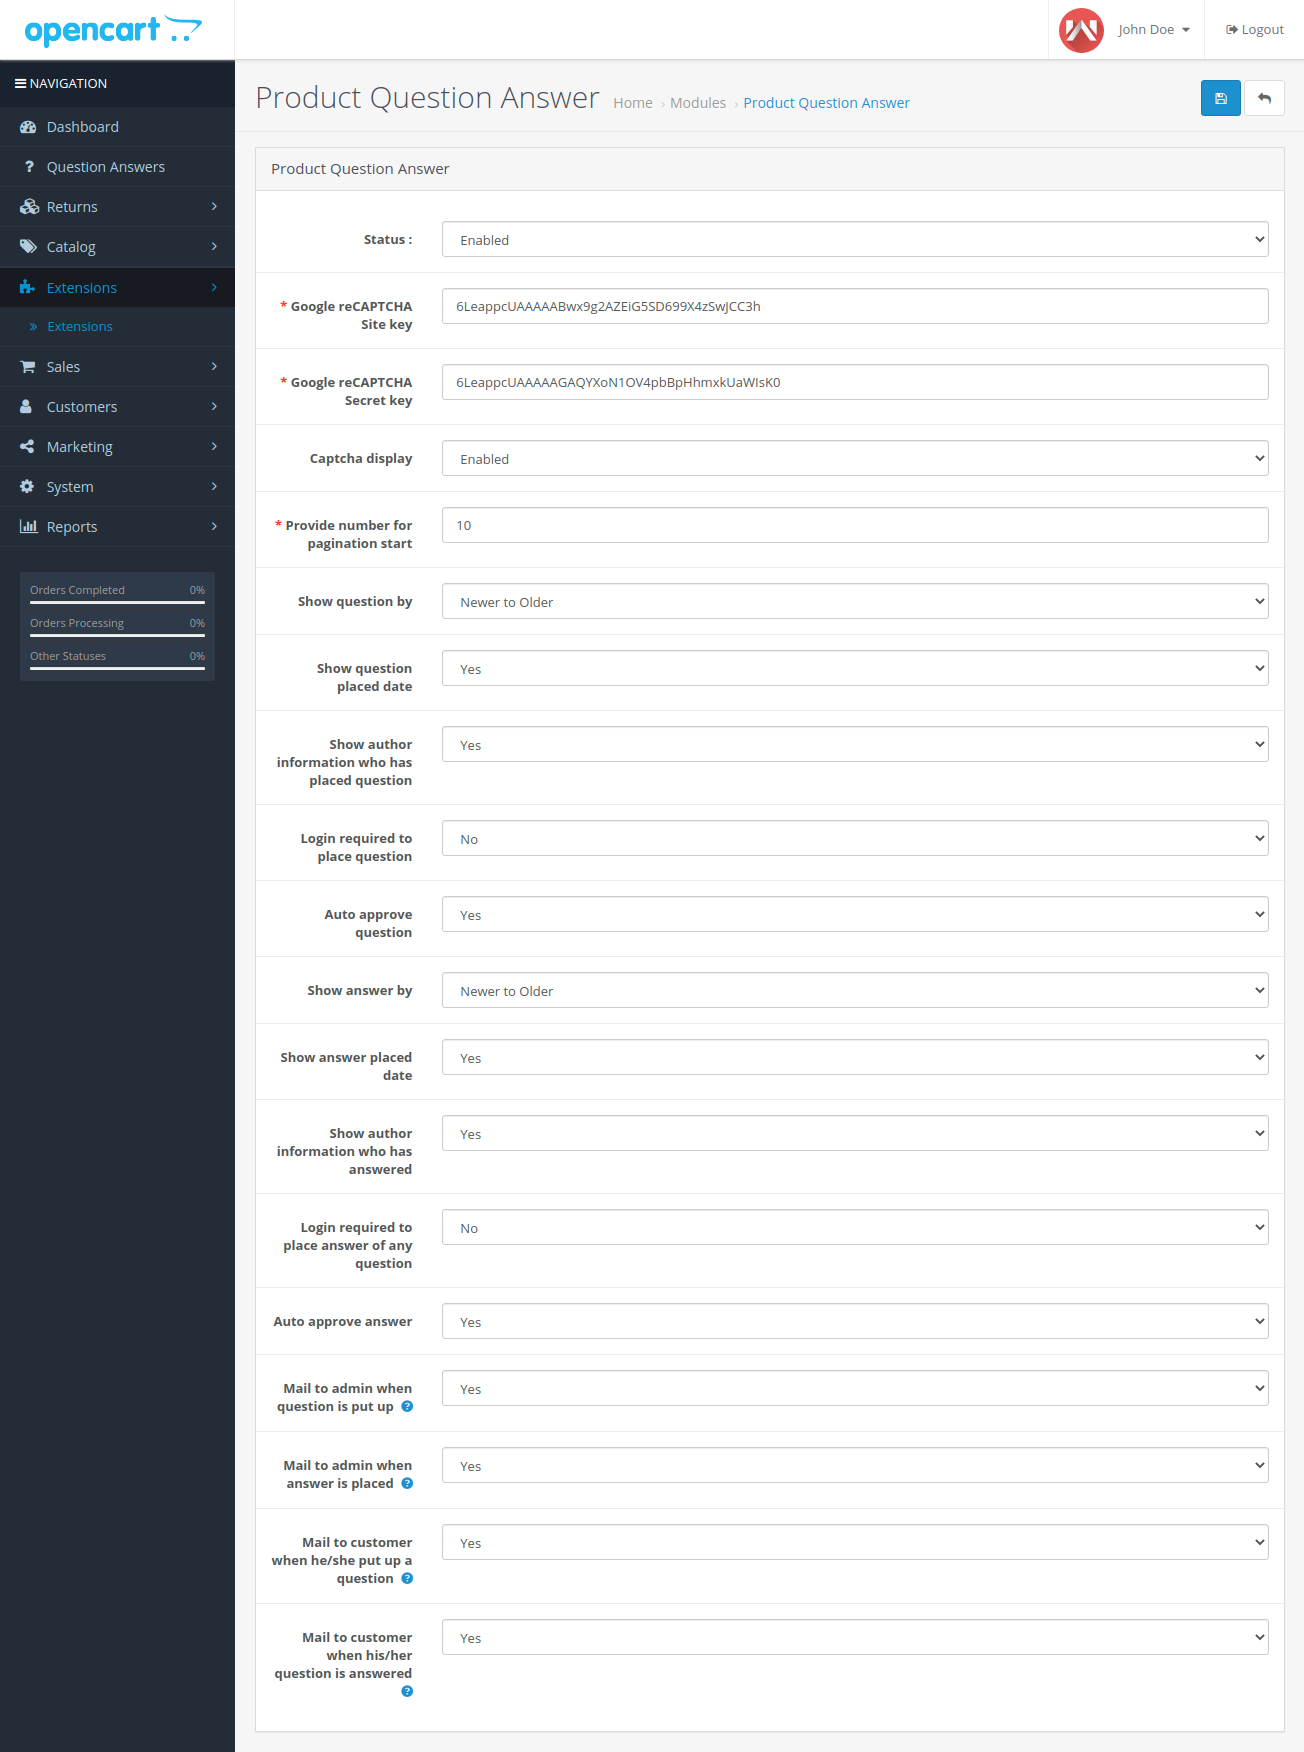 webkul-opencart-product-question-answers-admin-configurations